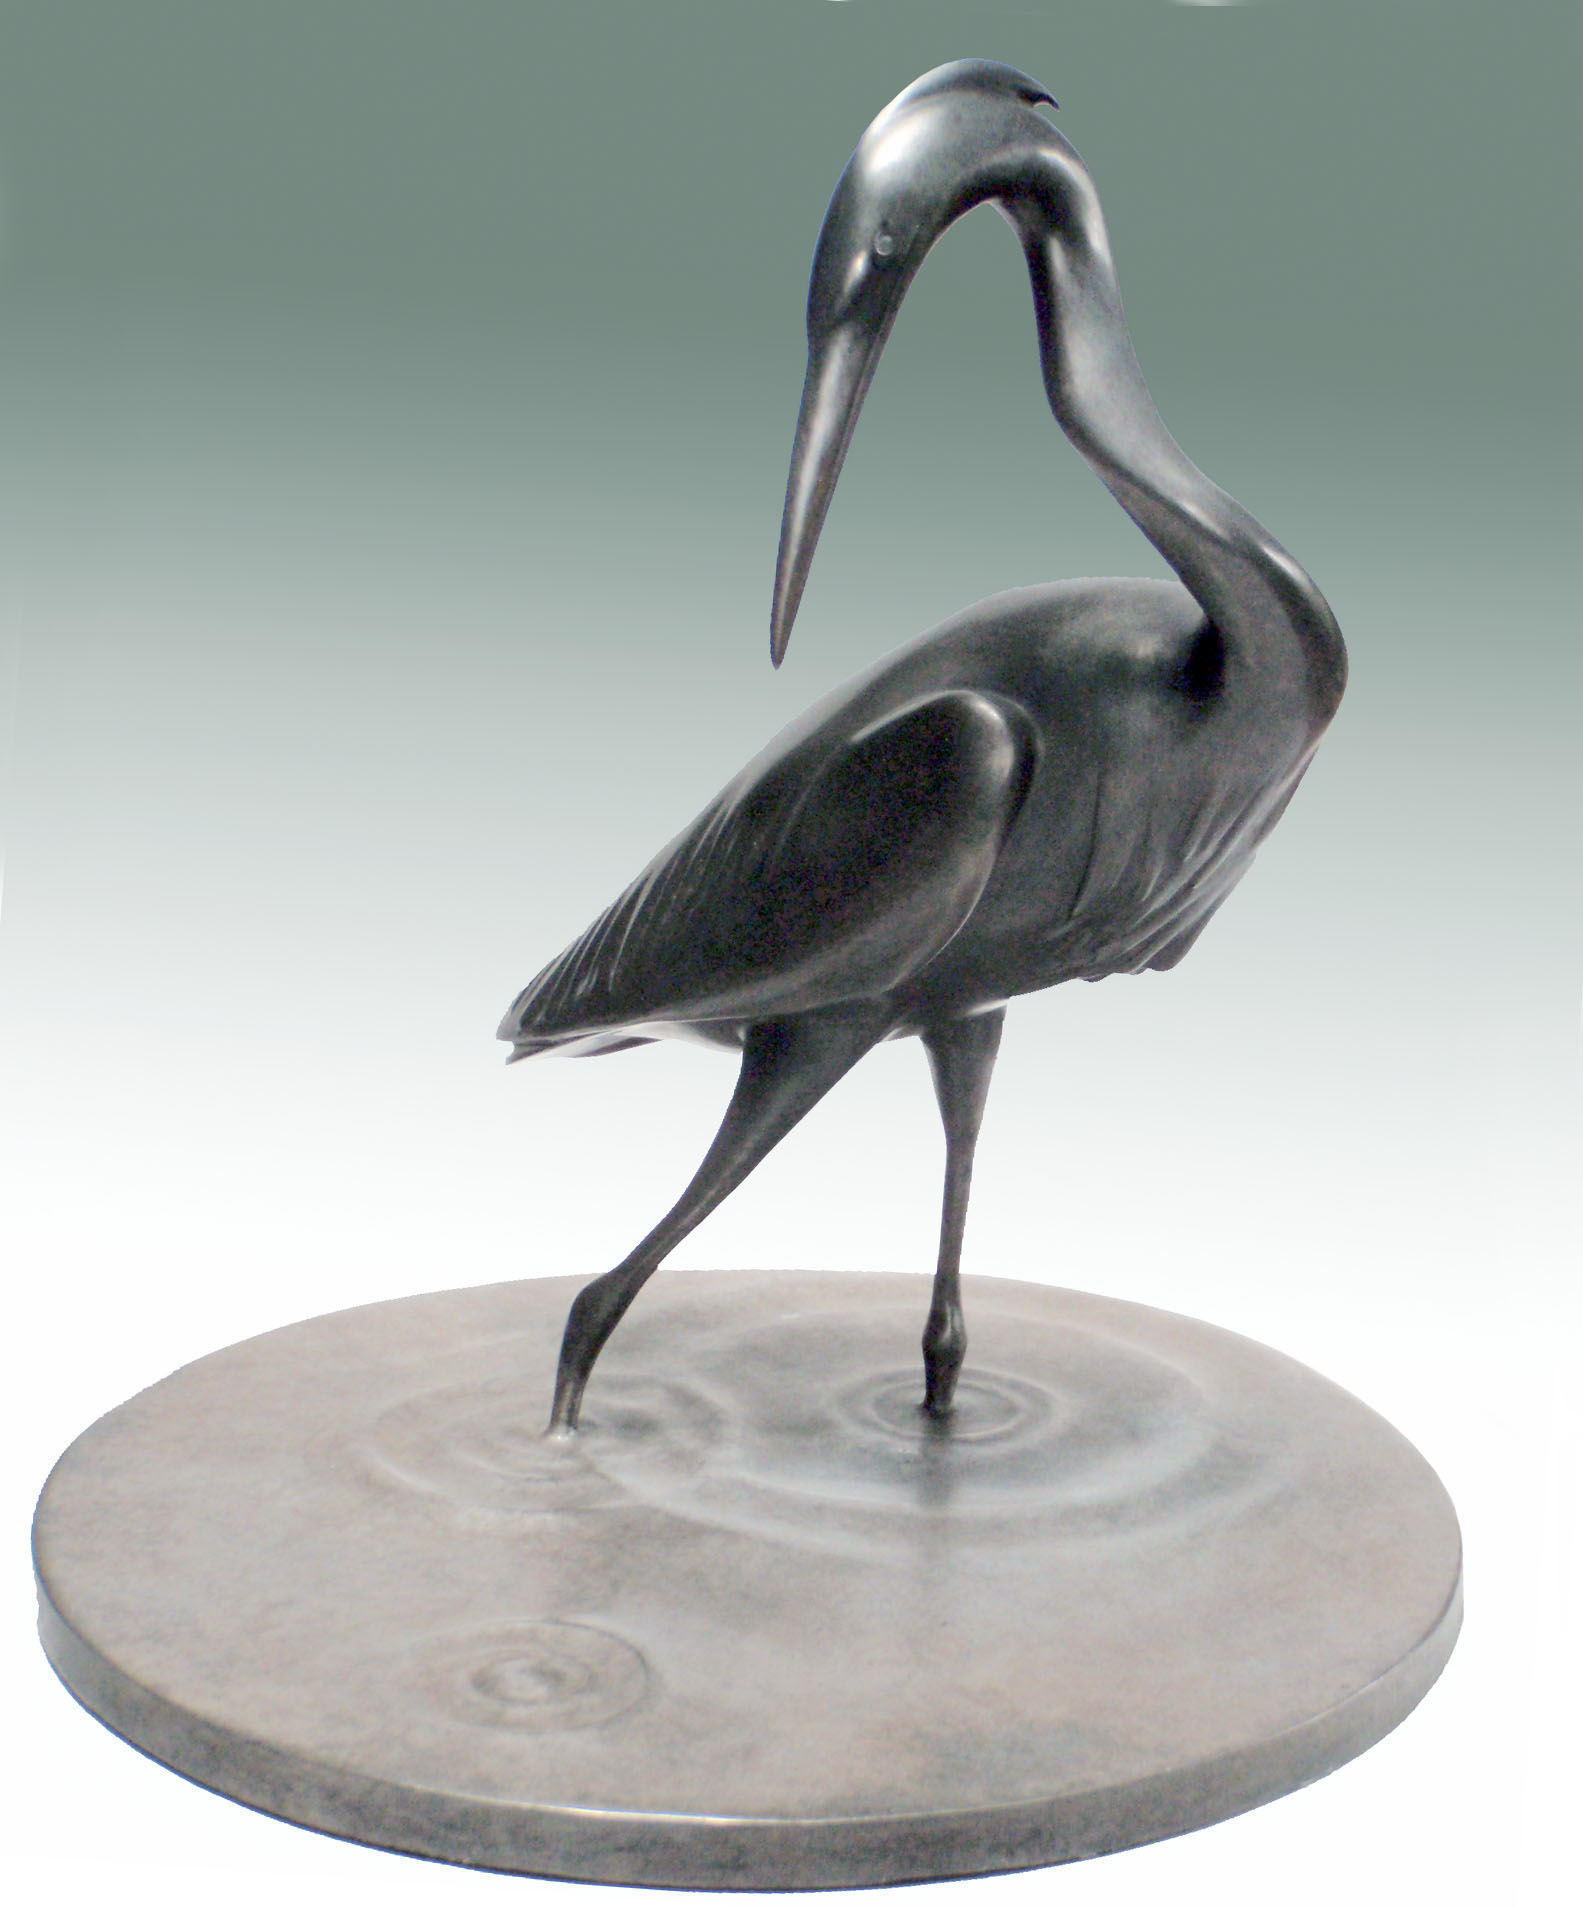 Heron, Bronze, 11 x 11 inches